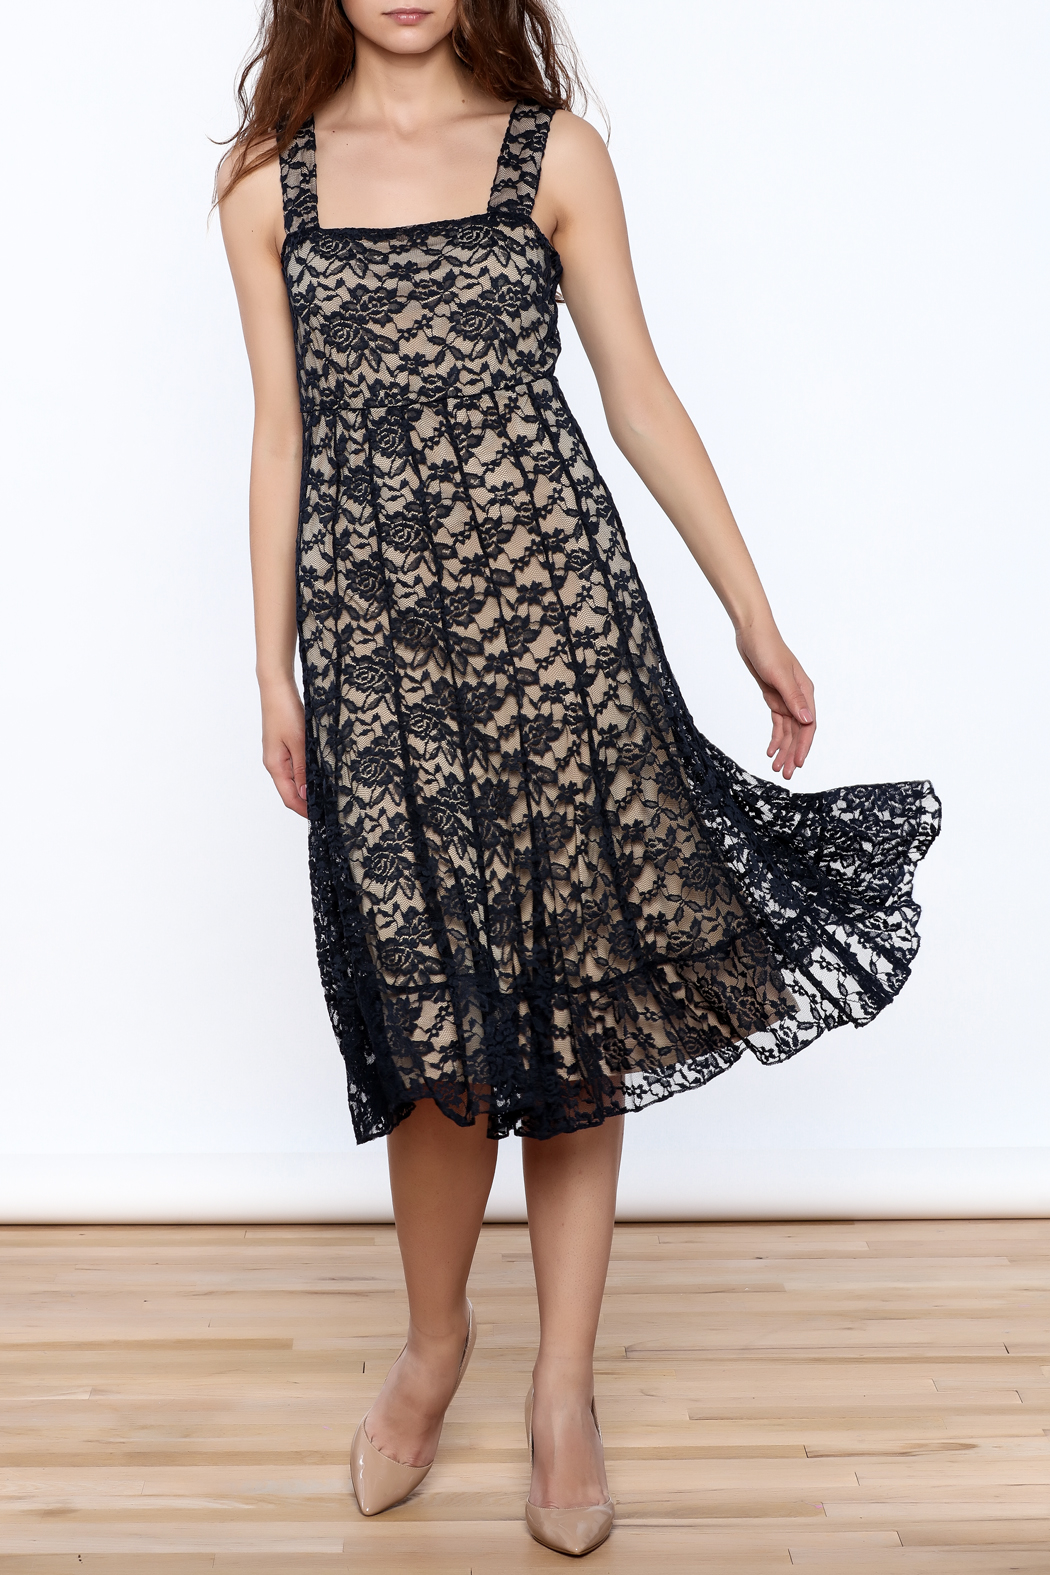 Sharon Max Navy Lace Midi Dress - Main Image